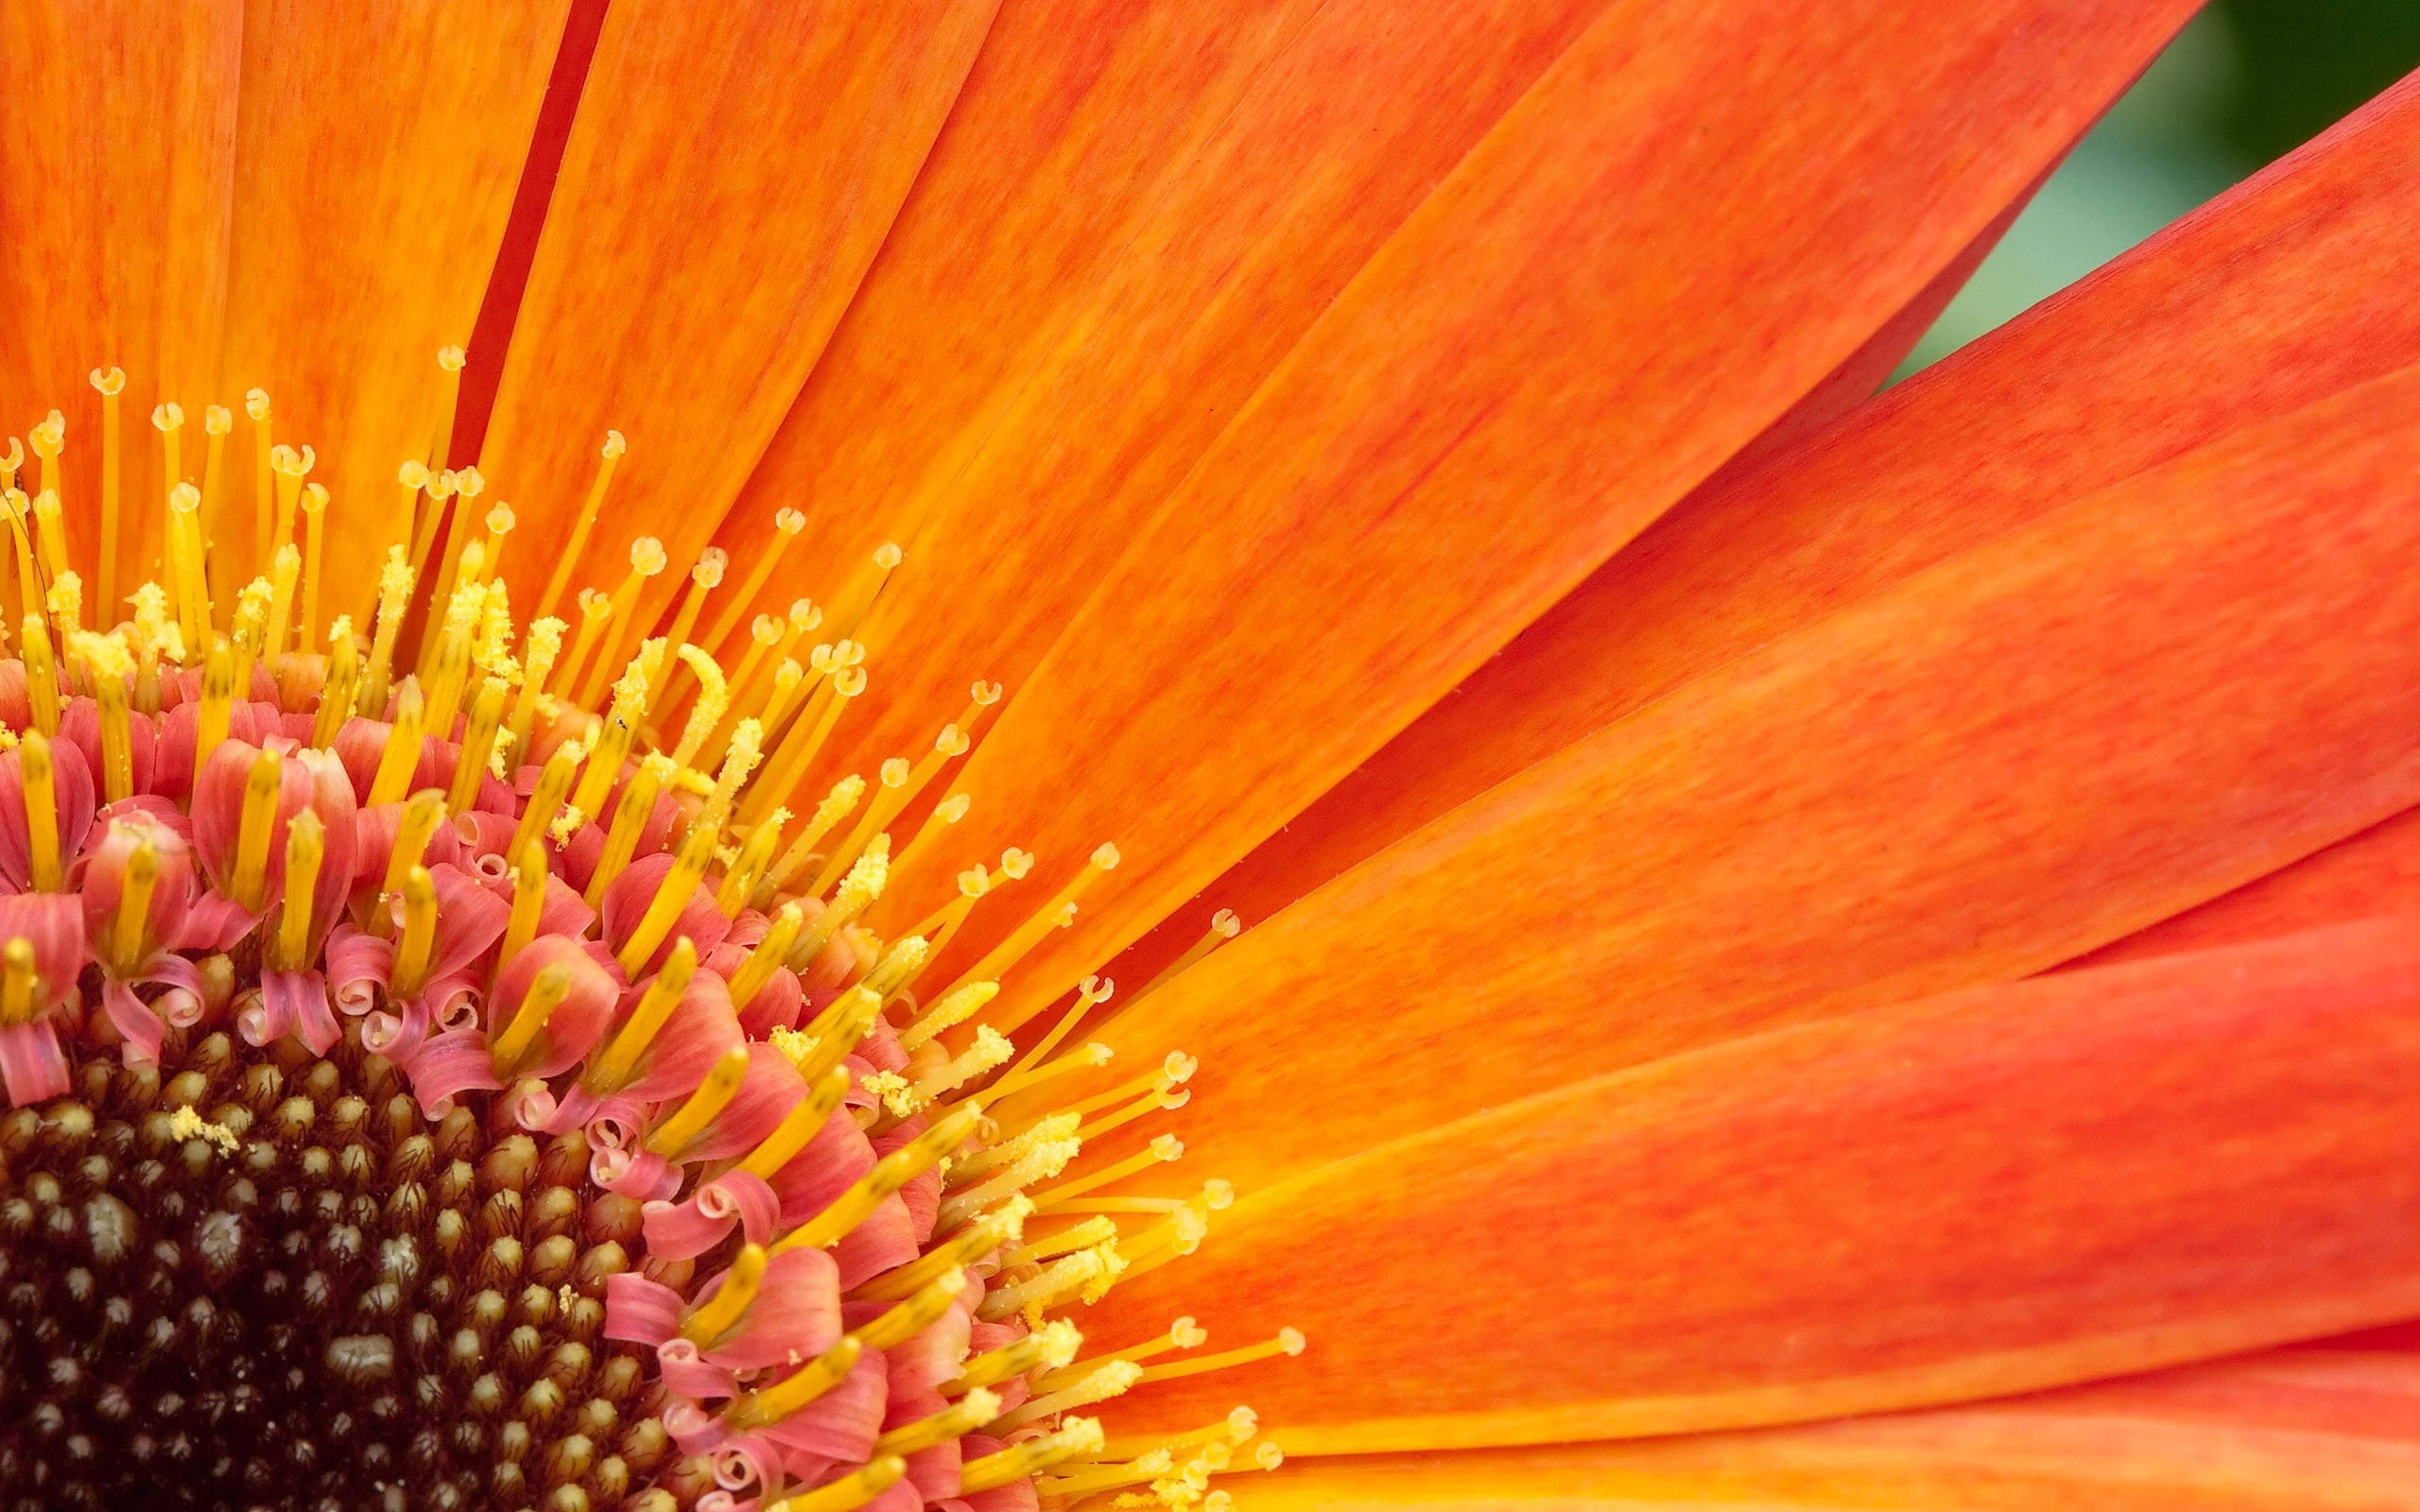 Orange Flower Desktop Background Wallpapers Hd Free 2560x1600px